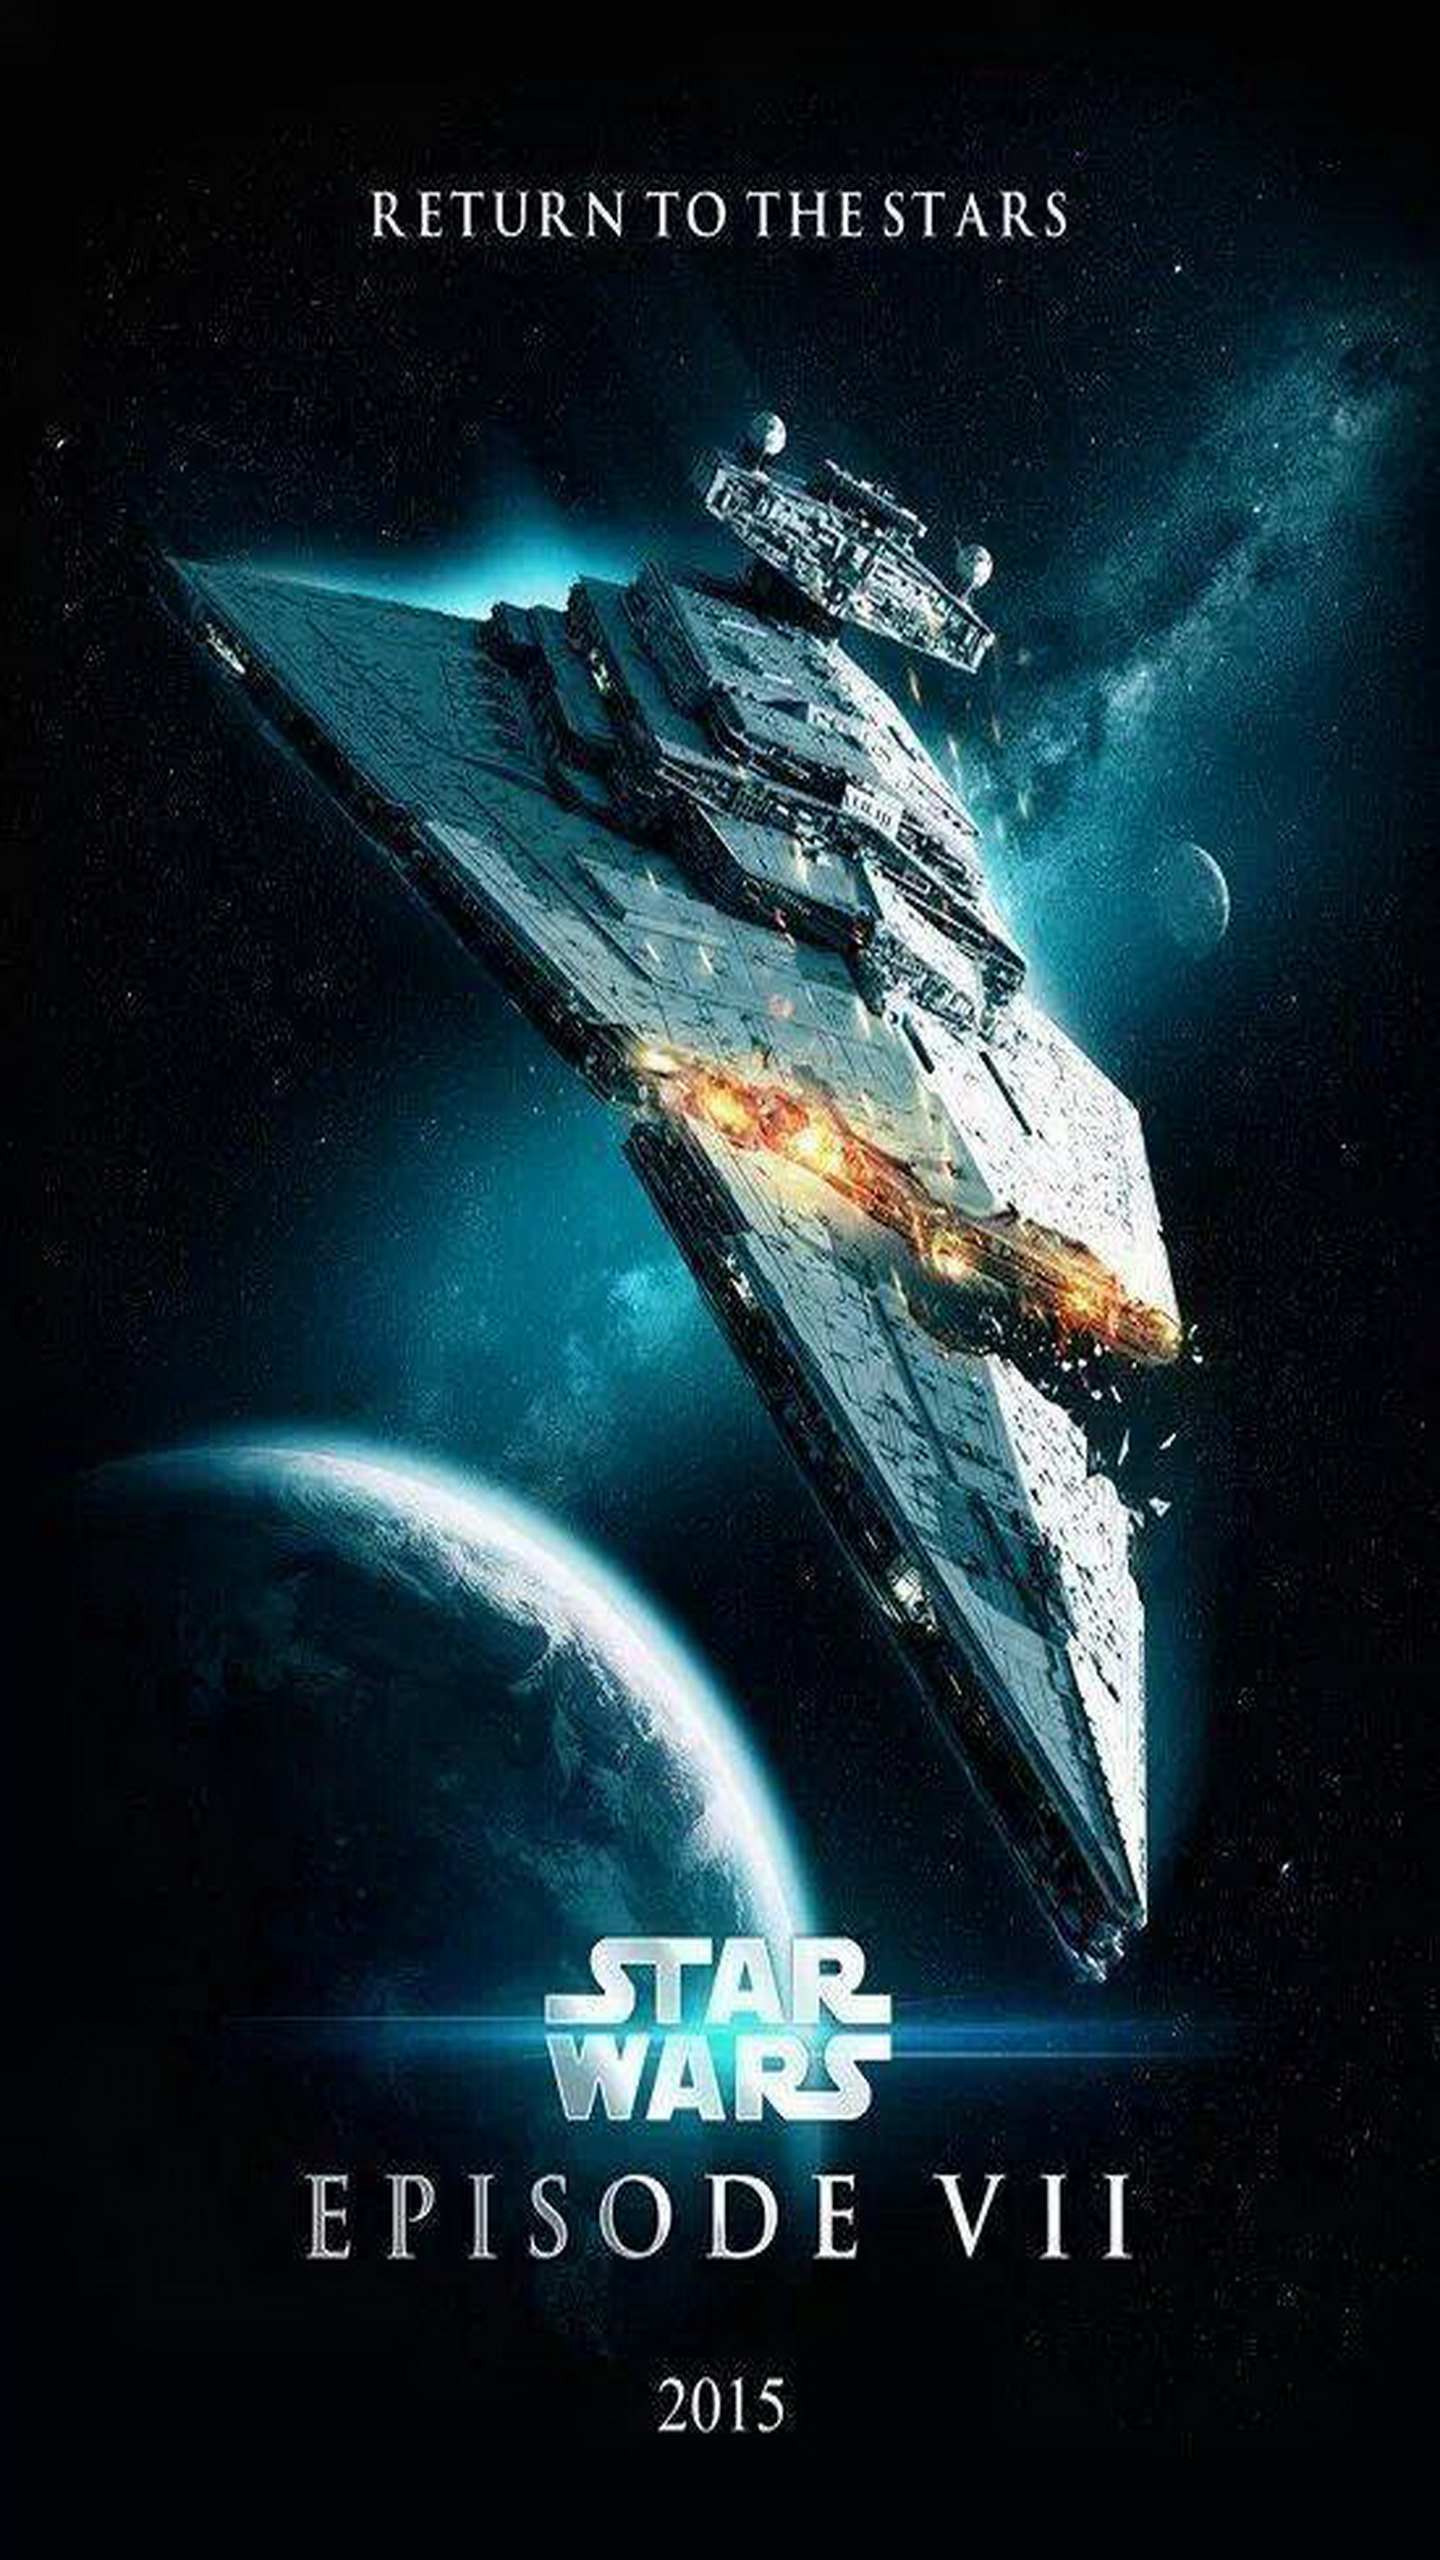 Star Wars Episode VII The Force Awakens 2015 Poster Galaxy Note 1440x2560